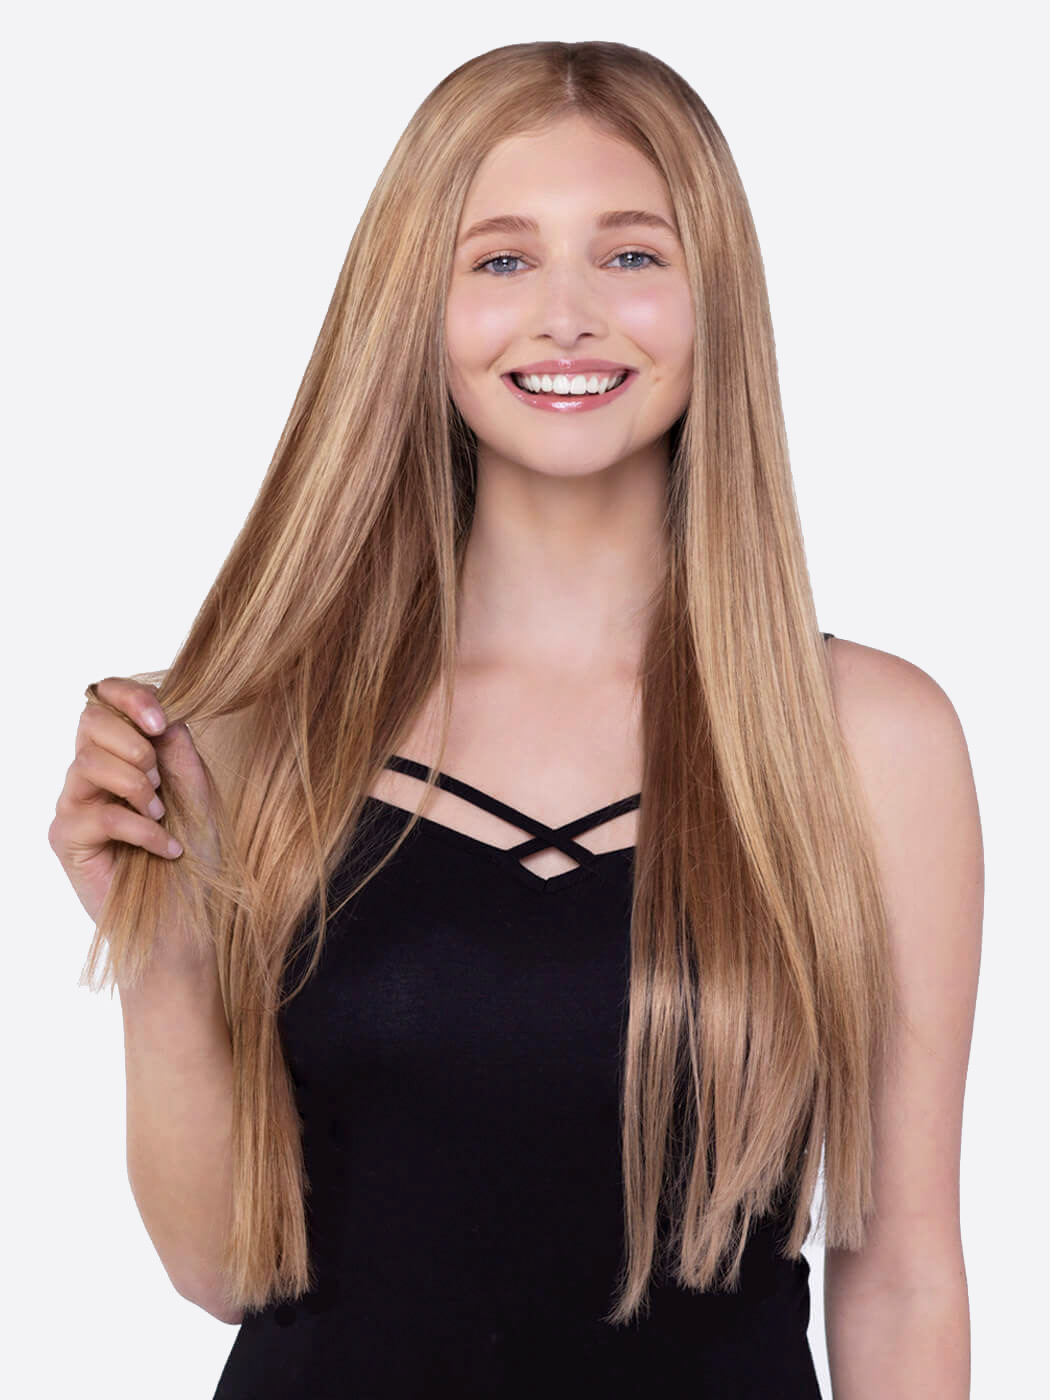 Blonde Hair Extensions | 20 Inch Hair Extensions | Natural Hair Clip Ins | Hair Extensions For Thin Hair | Remy Hair